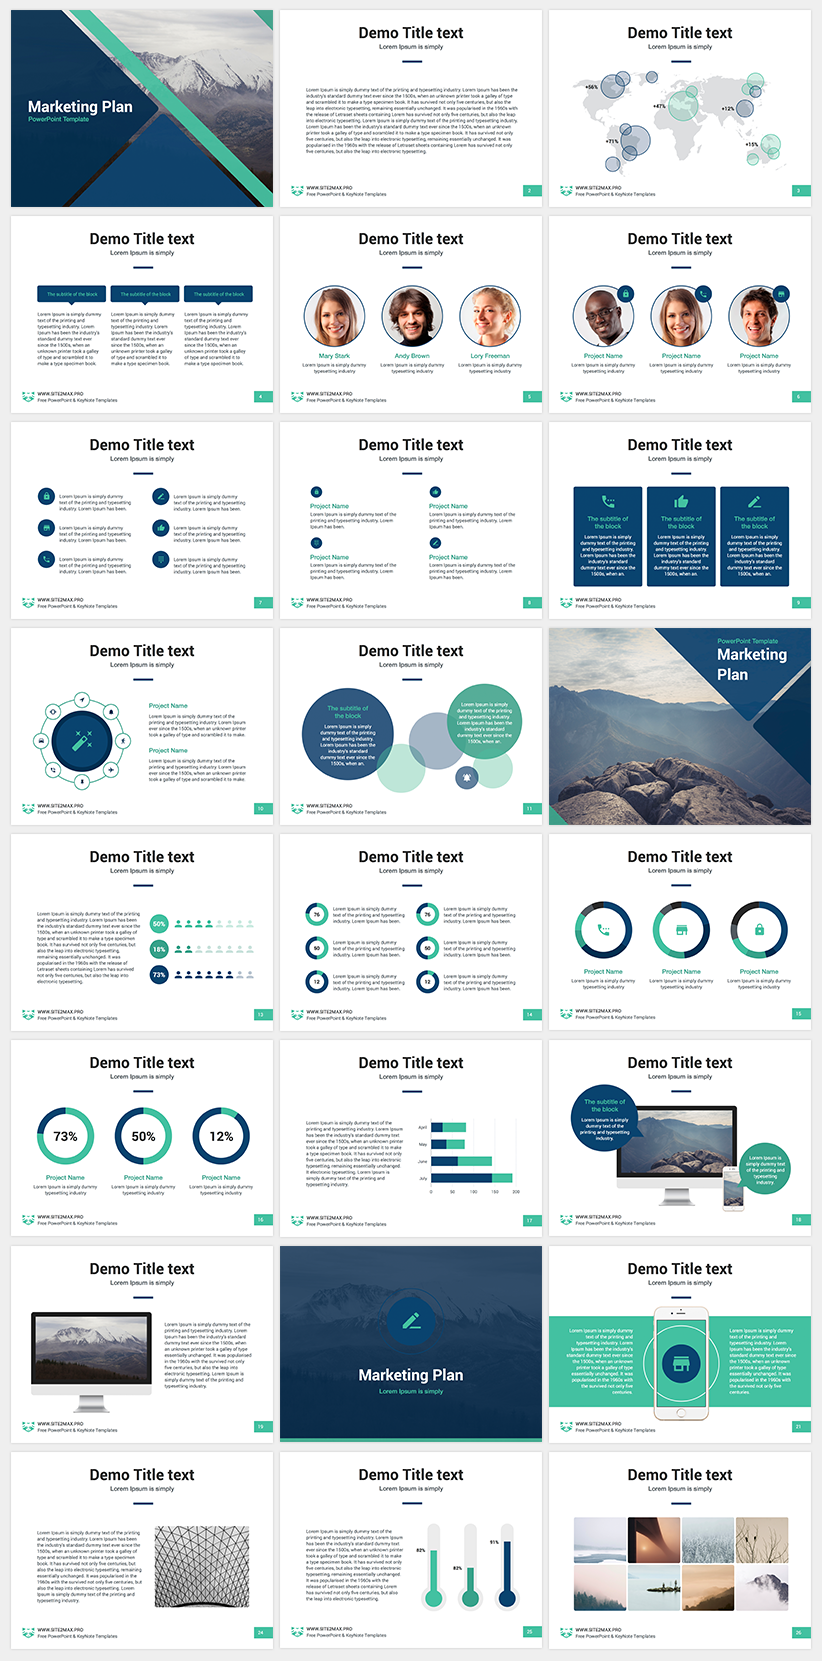 marketing plan free powerpoint template designs pinterest